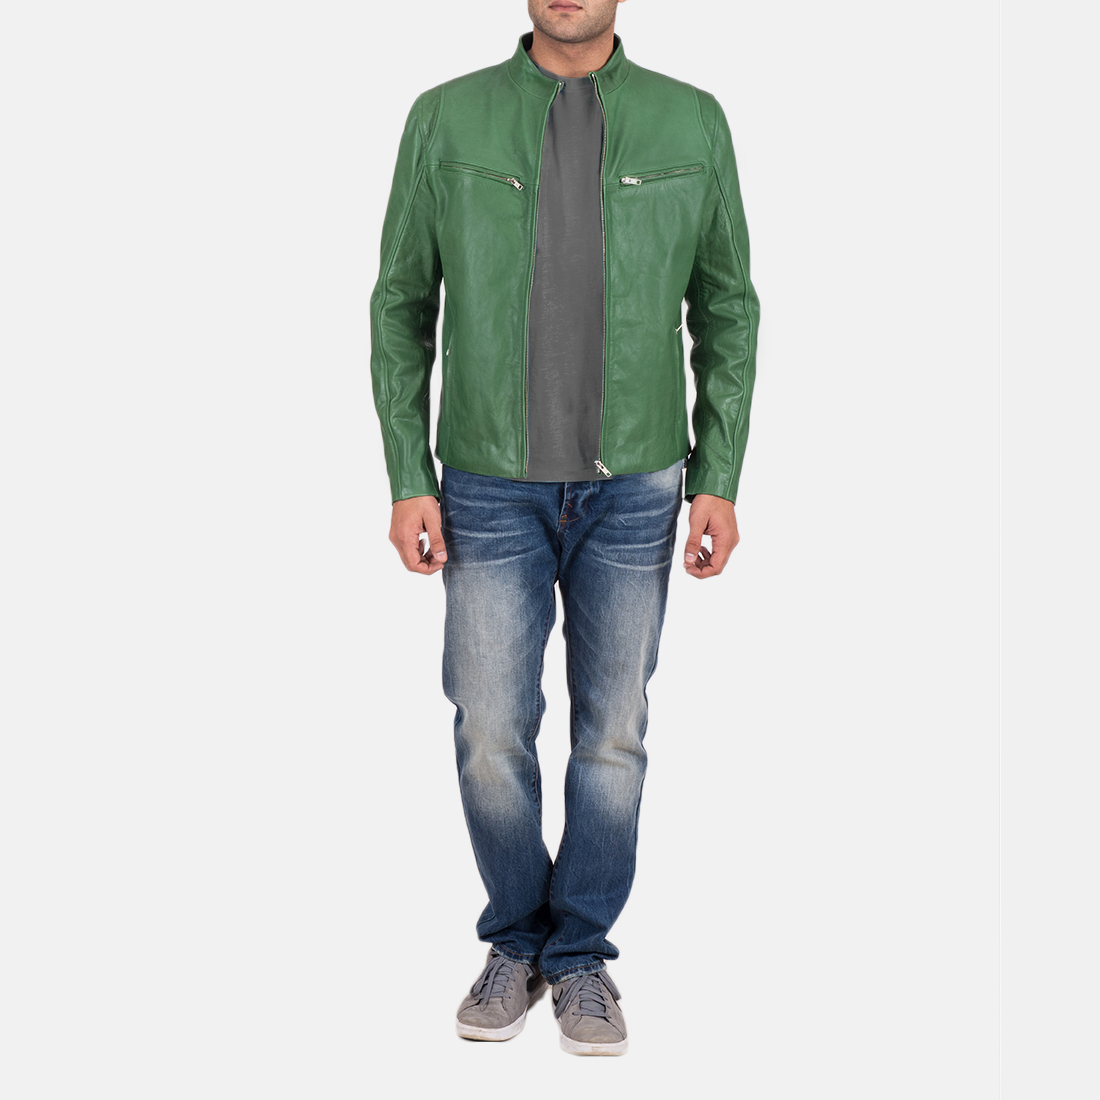 Mens Ionic Green Leather Jacket 2